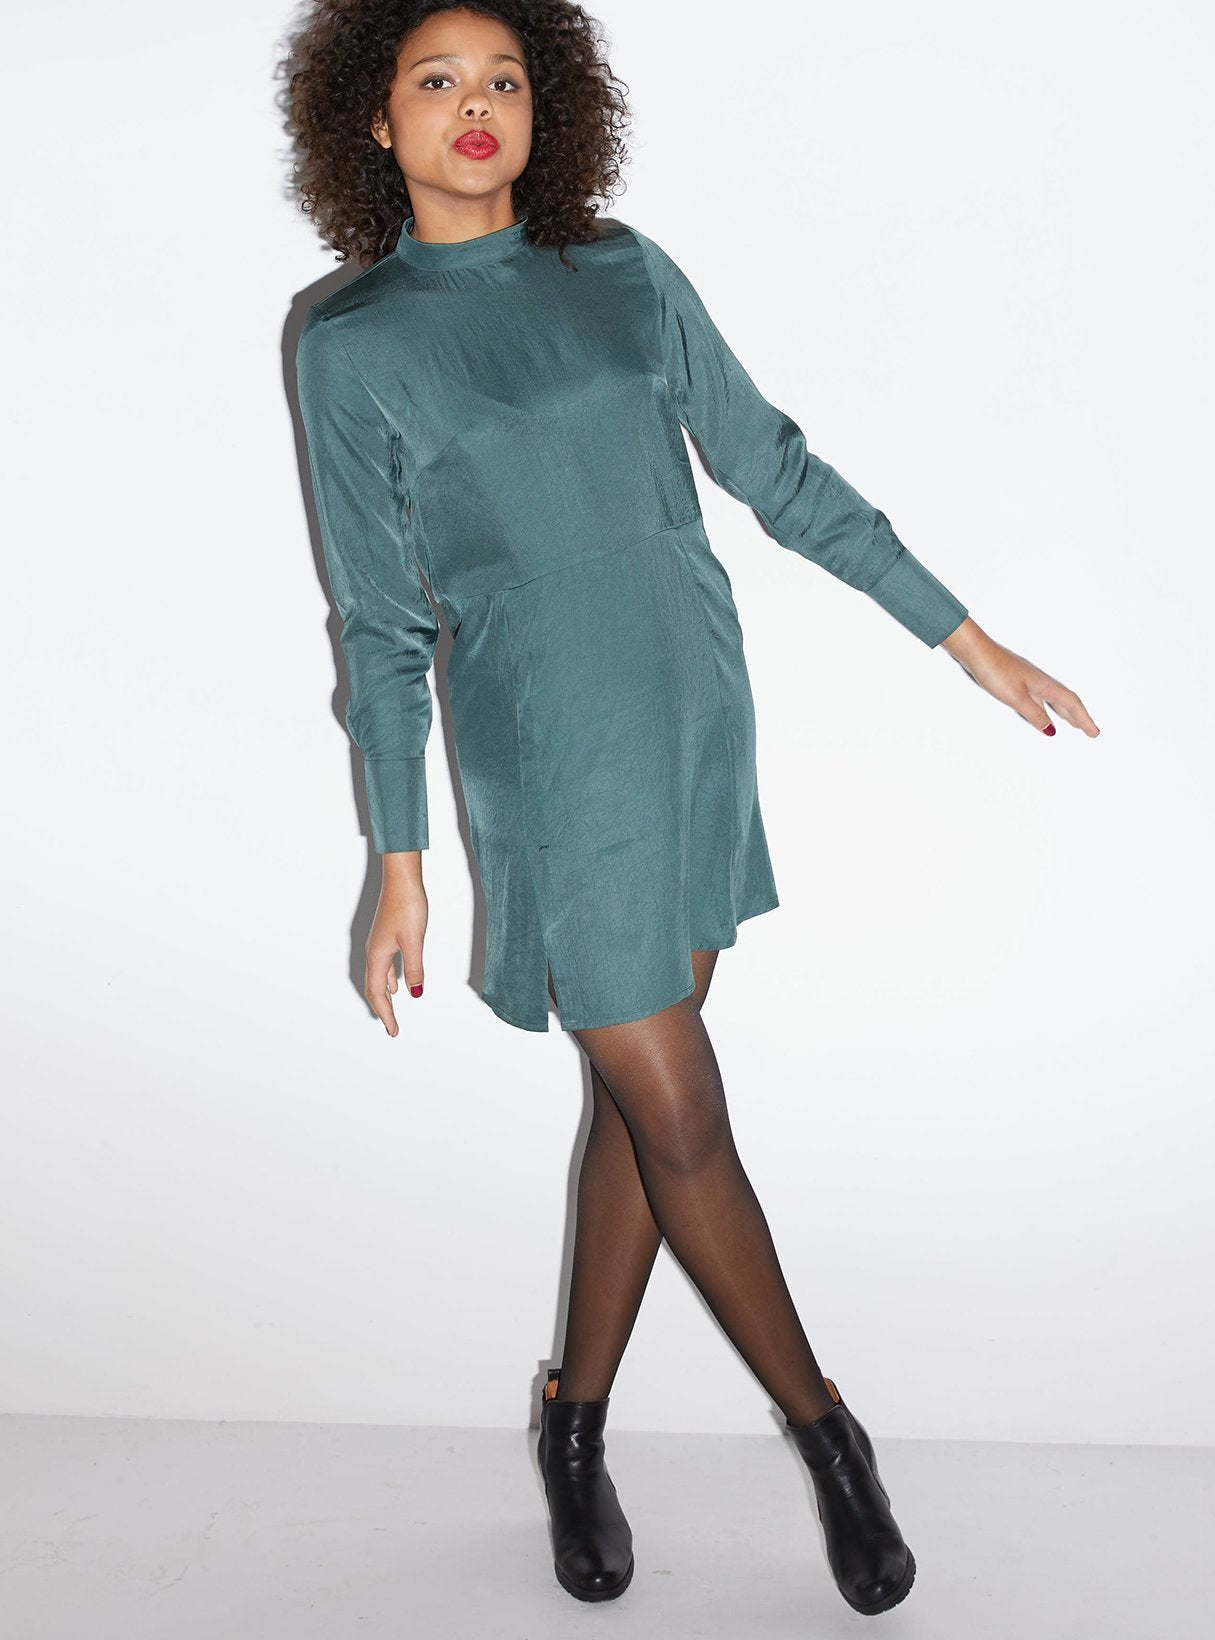 Vegan silk dress with open back - dark green